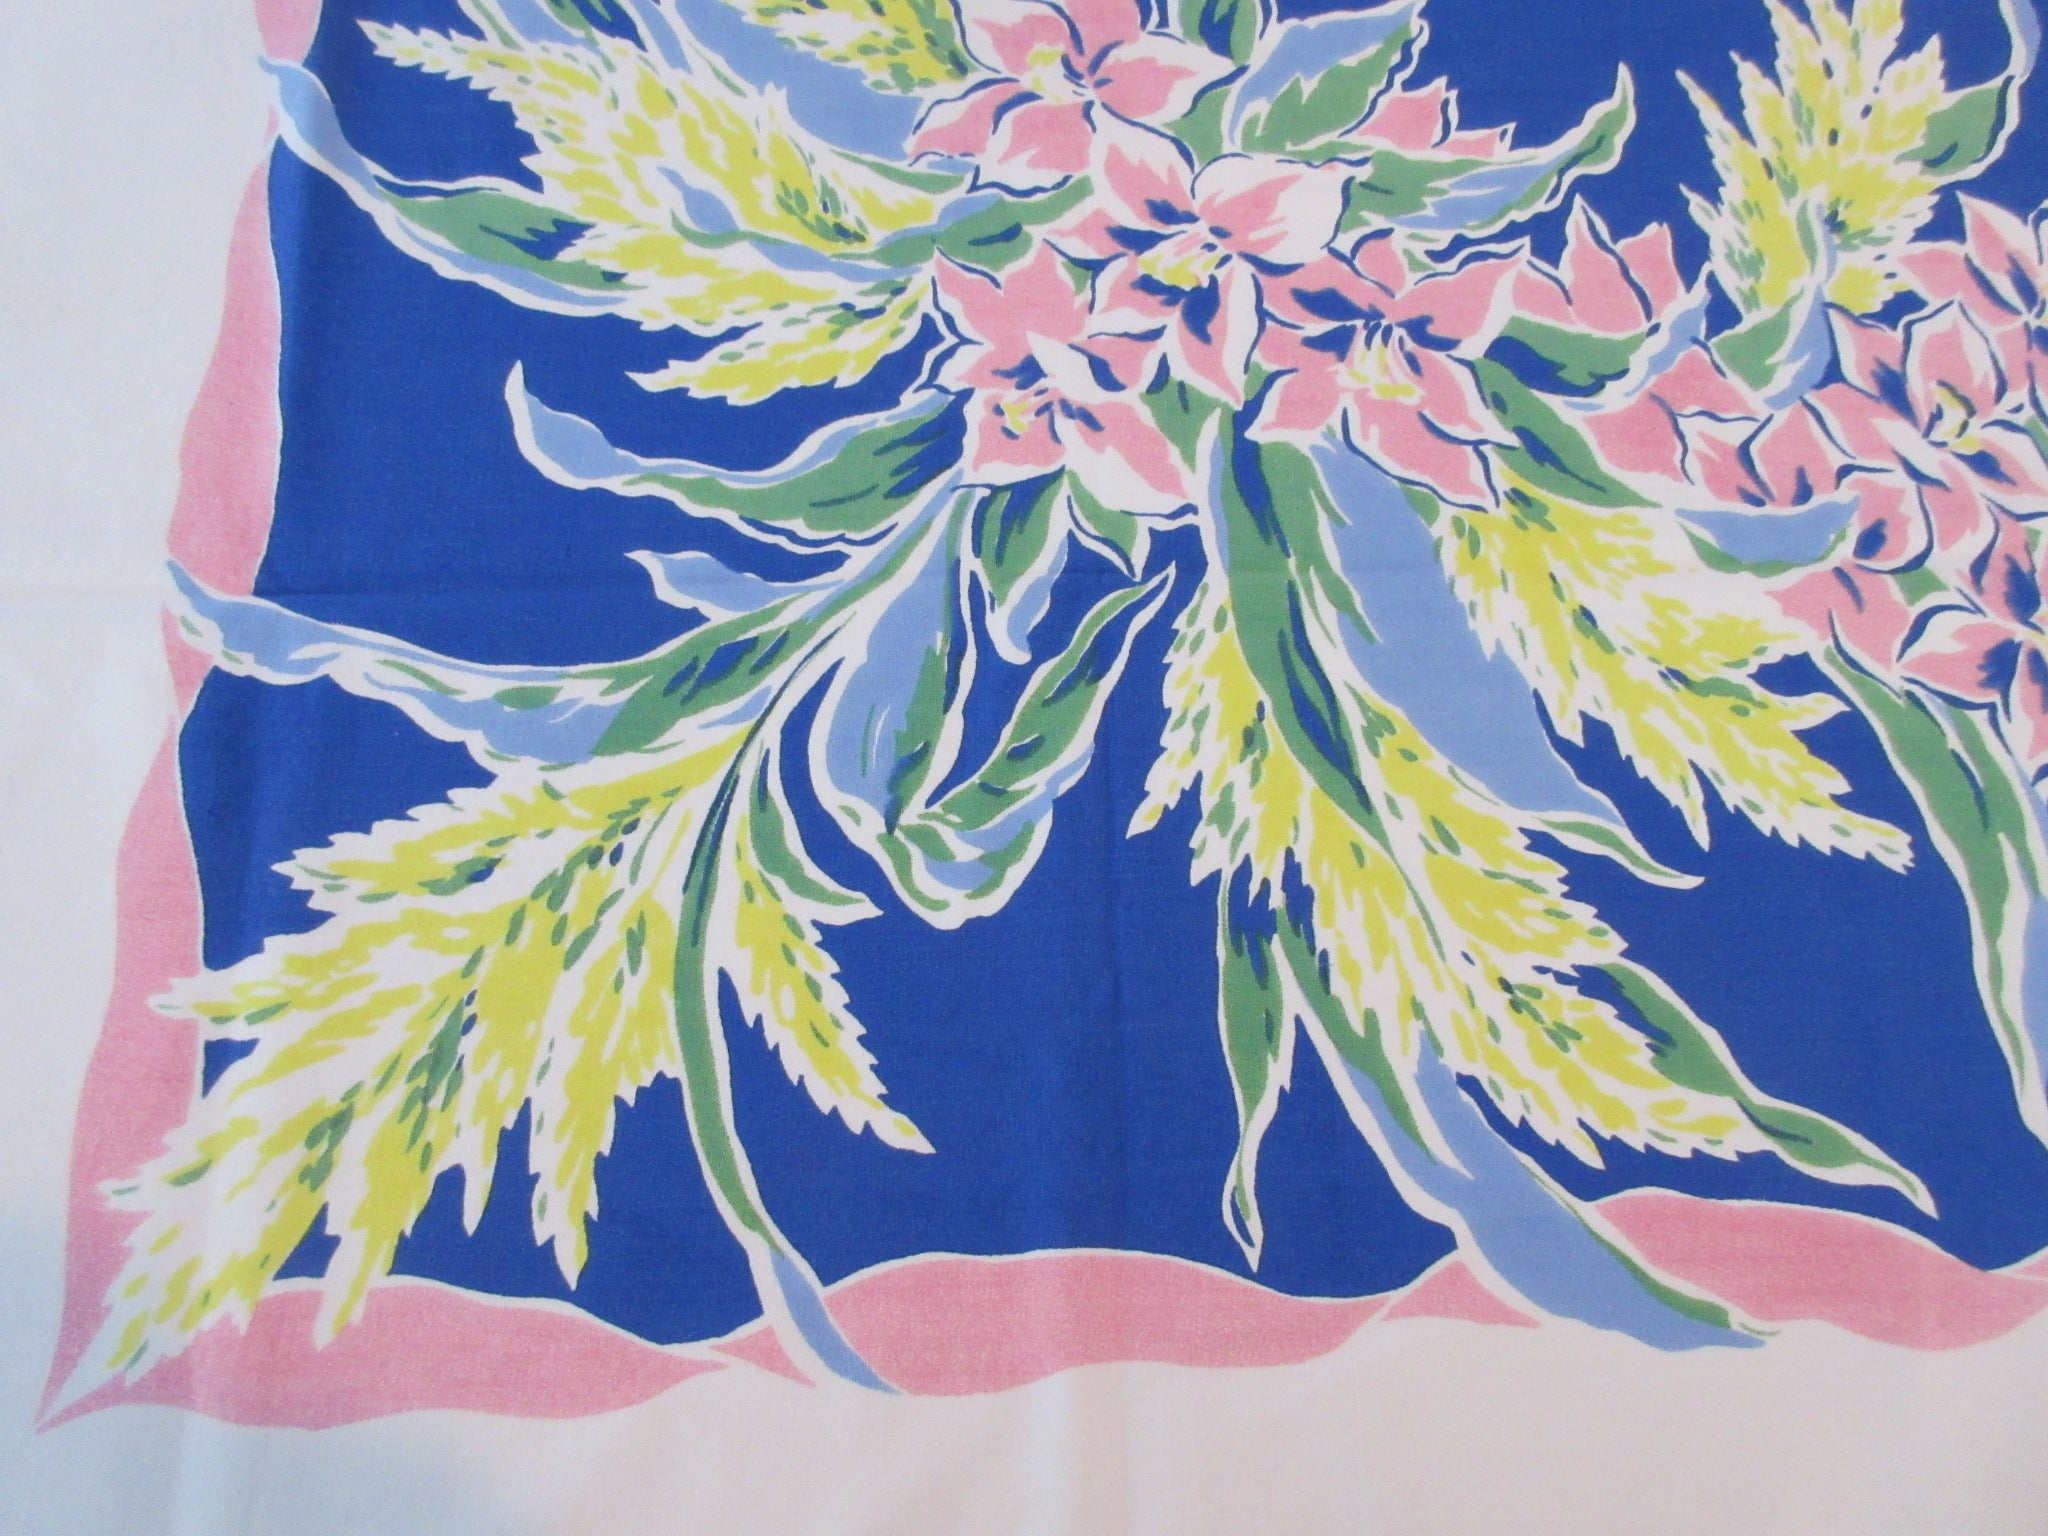 Pink Pastel Flowers on French Navy Cutter? Floral Vintage Printed Tablecloth (58 X 51)